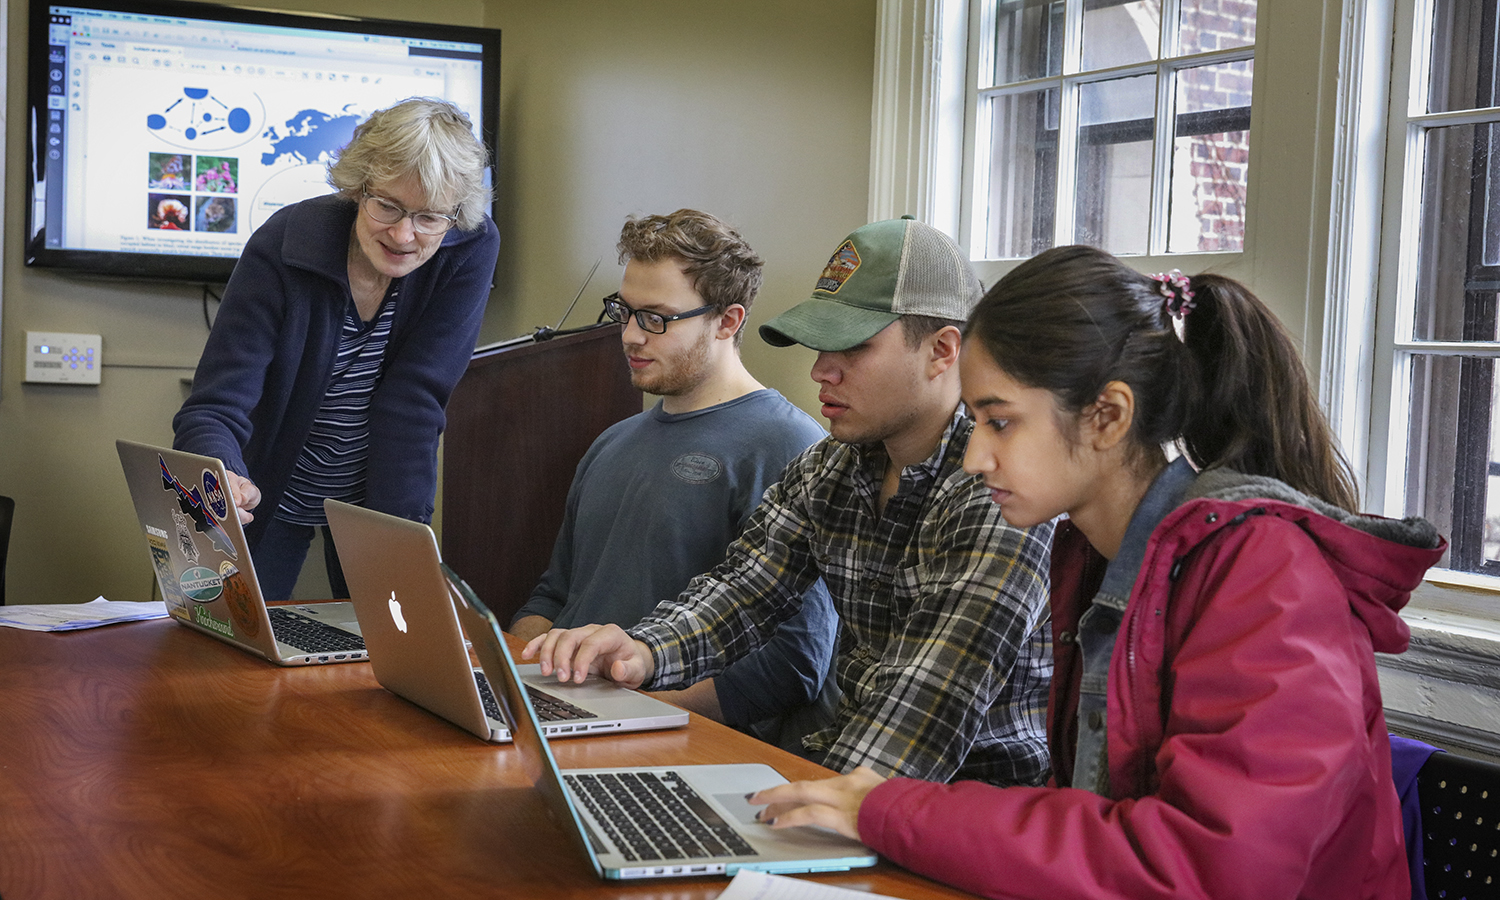 Professor of Biology Beth Newell discusses species dispersal models in âBiological Reponses to Climate Changeâ with Luke Pfund â18, Dan Robeson '18 and Shweta Patel â18 during a Biology senior seminar in Coxe Hall.